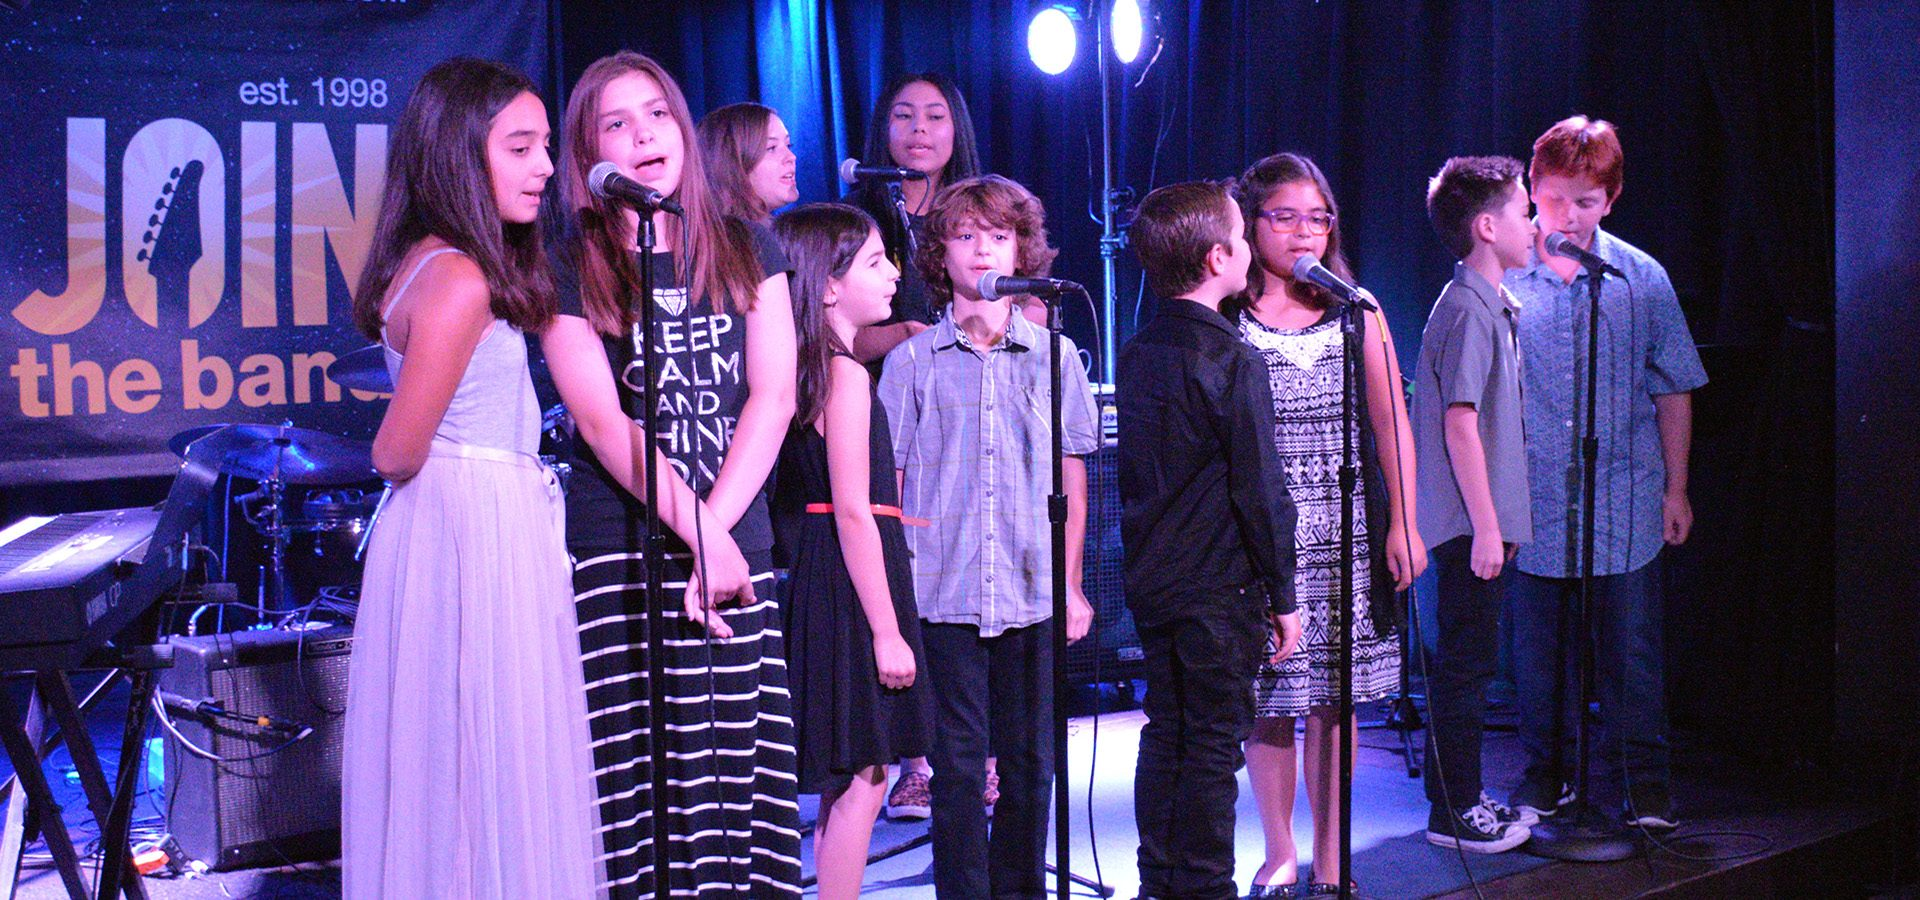 Singing Music Camp - Group - Sherman Oaks, Los Angeles - Join The Band